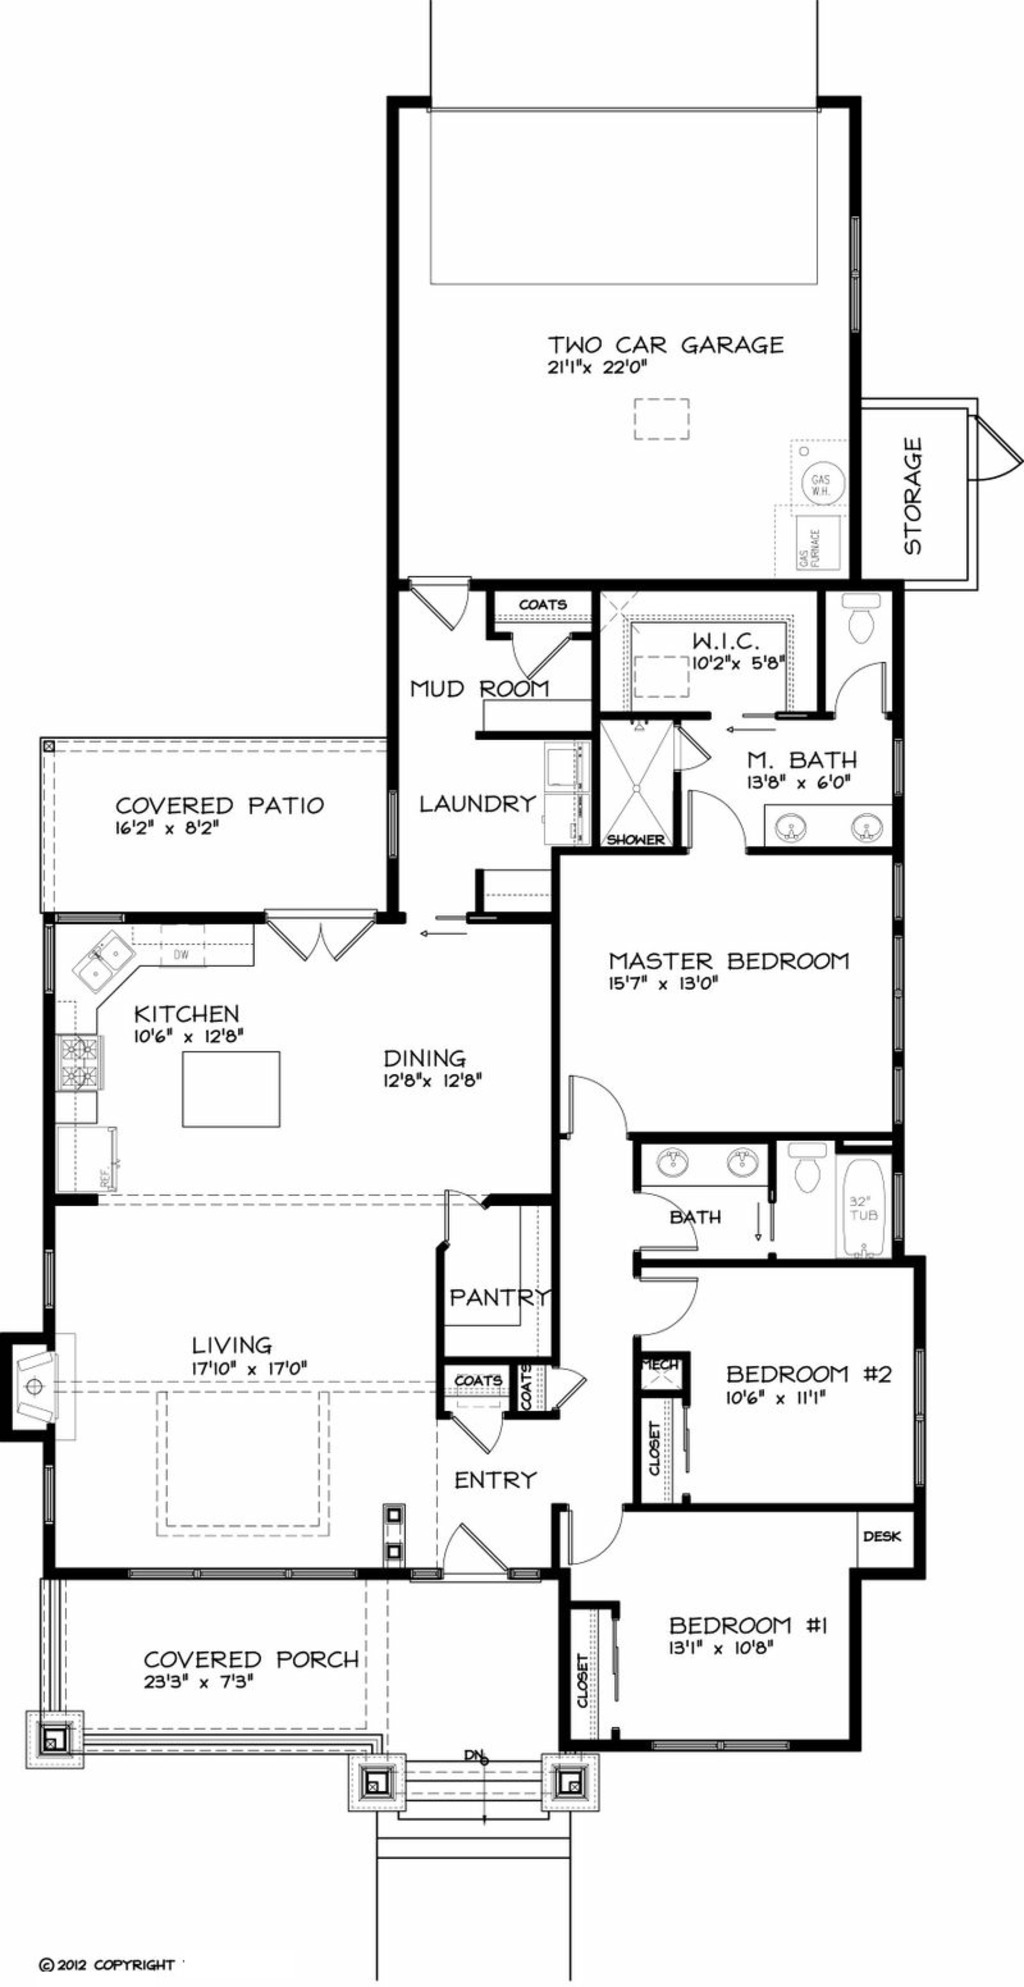 House Plan with Pictures New Craftsman Style House Plan 3 Beds 2 Baths 1749 Sq Ft Plan 434 17